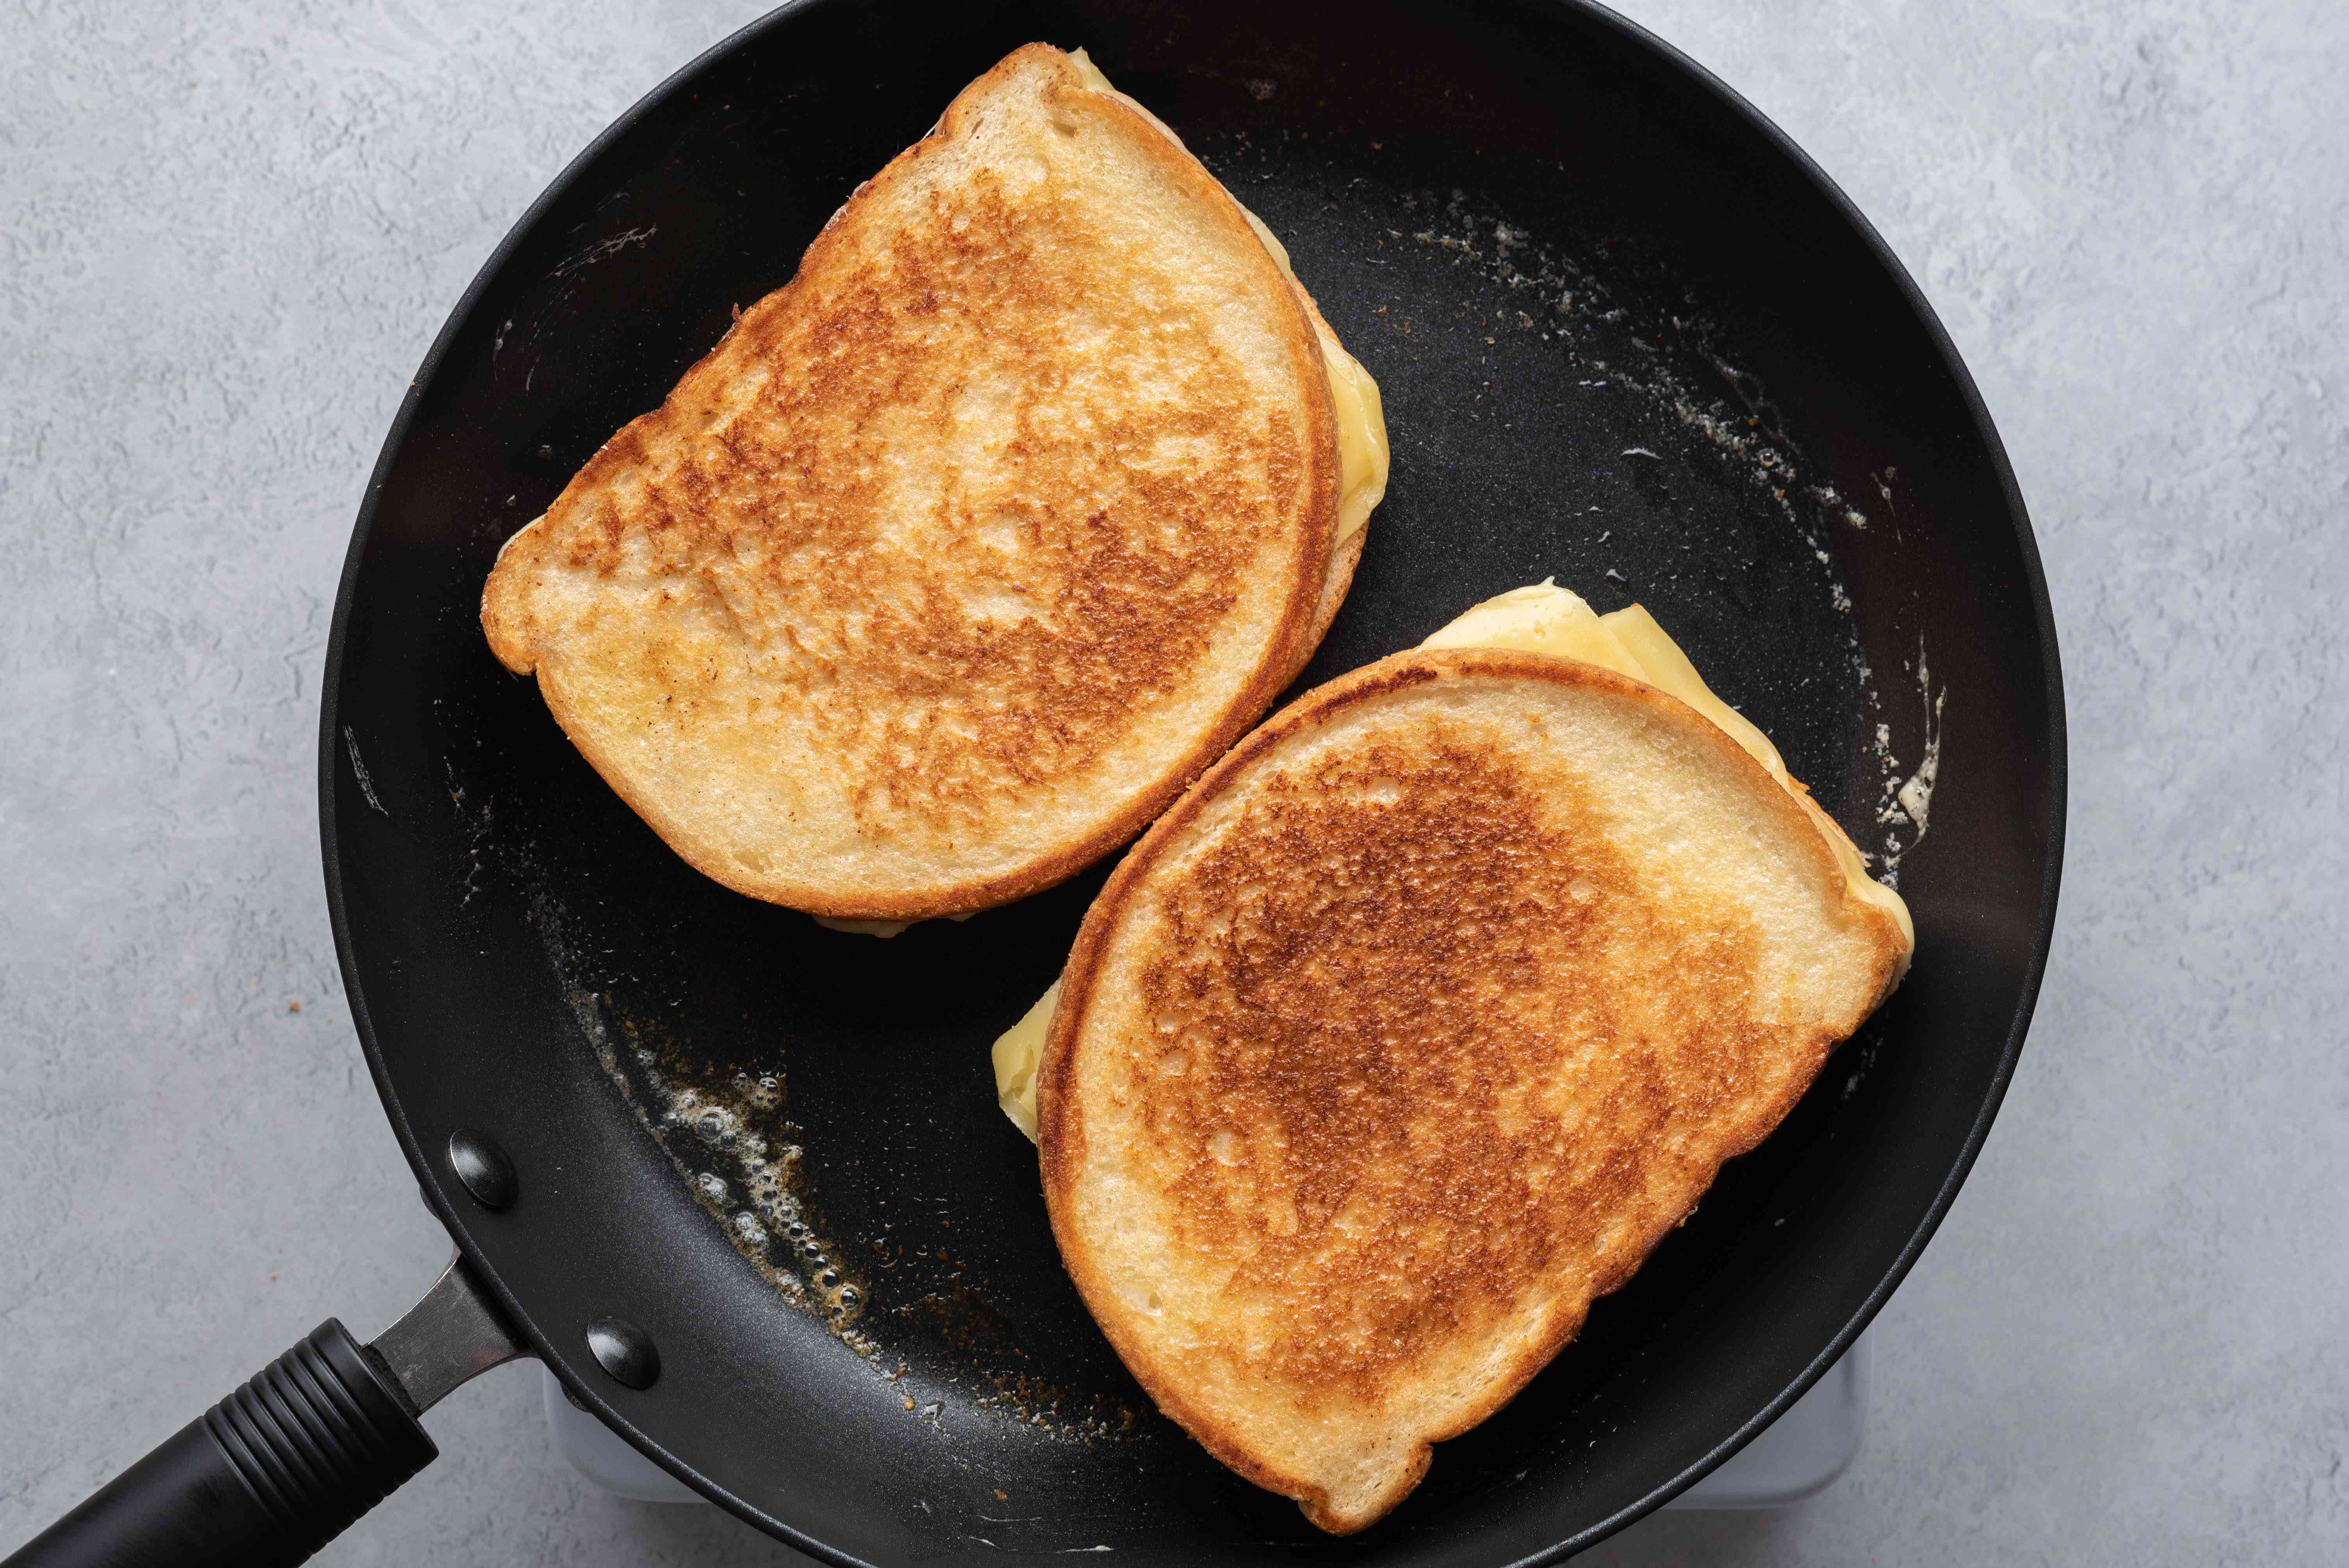 sandwiches being grilled in a pan until golden brown